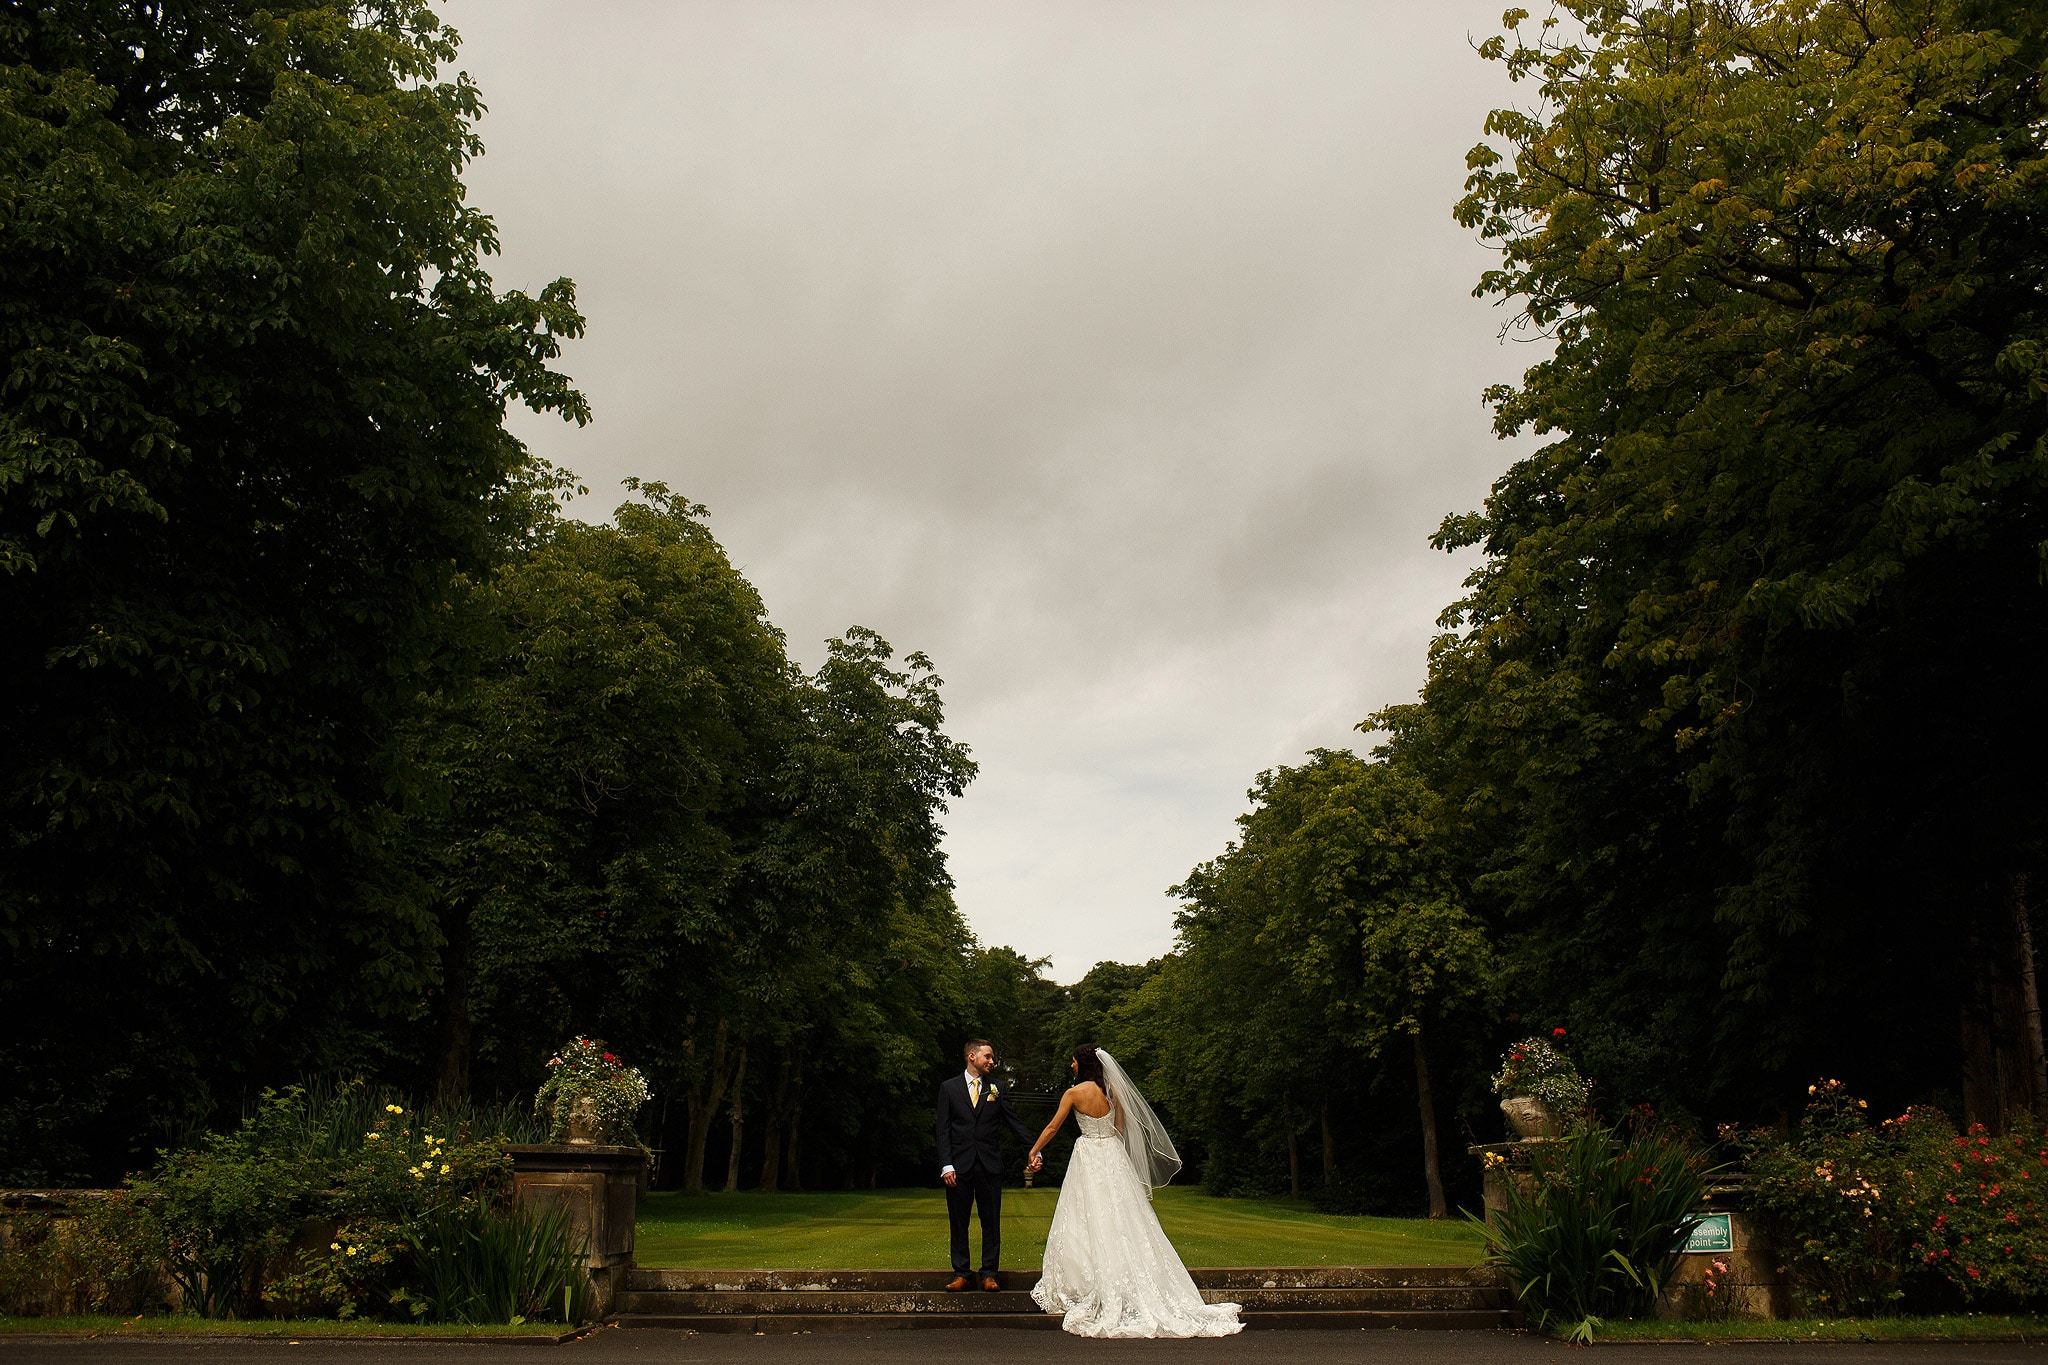 wedding portrait of bride and groom in the gardens at Crathorne Hall